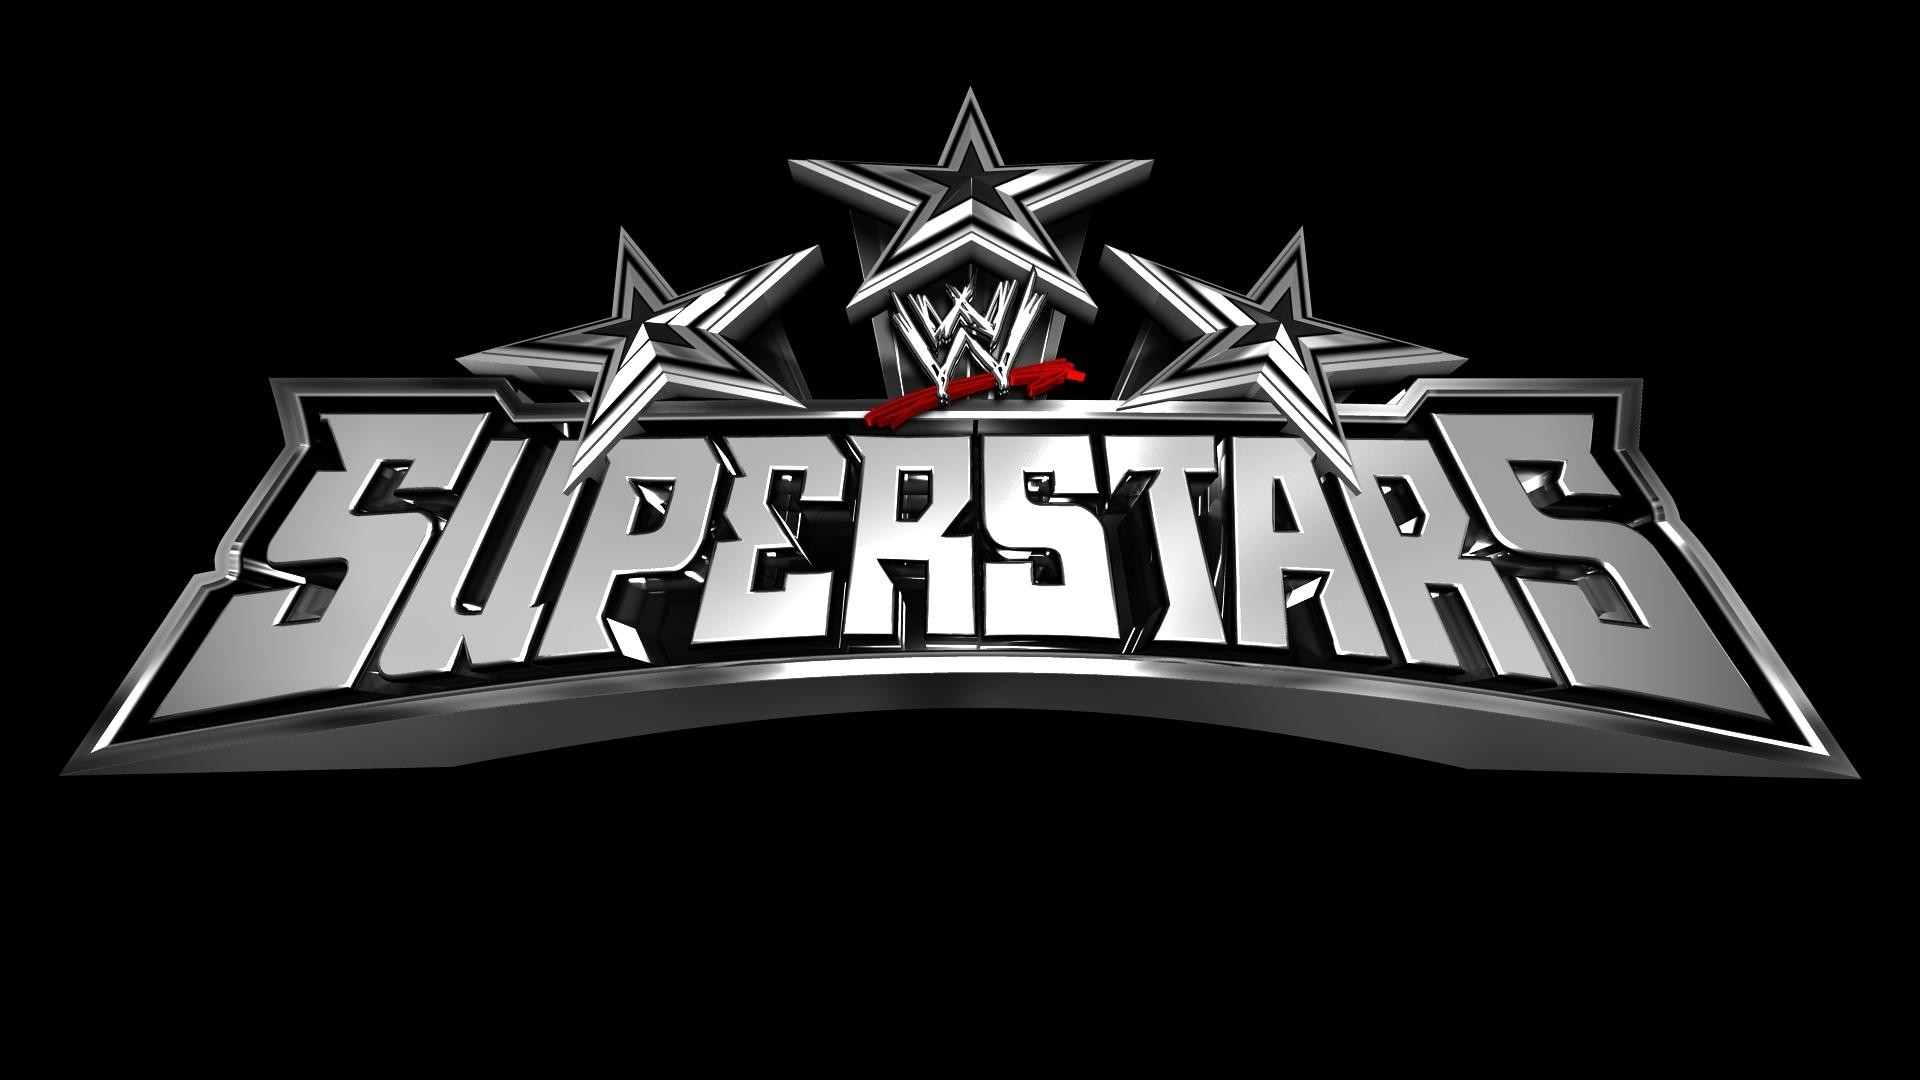 Res: 1920x1080, WWE Superstars logo